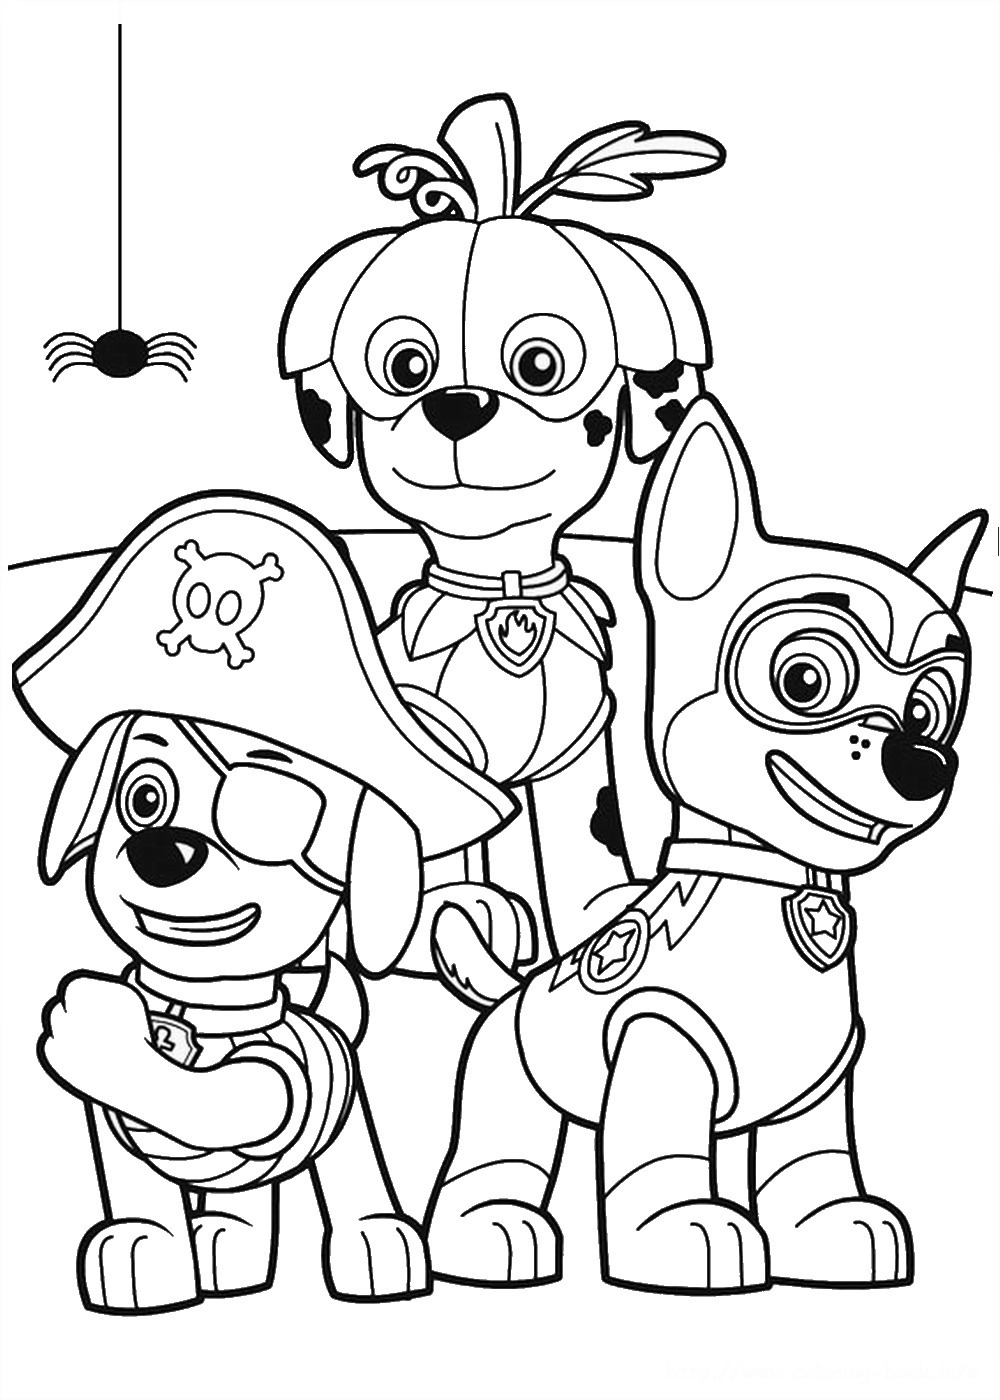 coloring pages at nick jr - photo#12